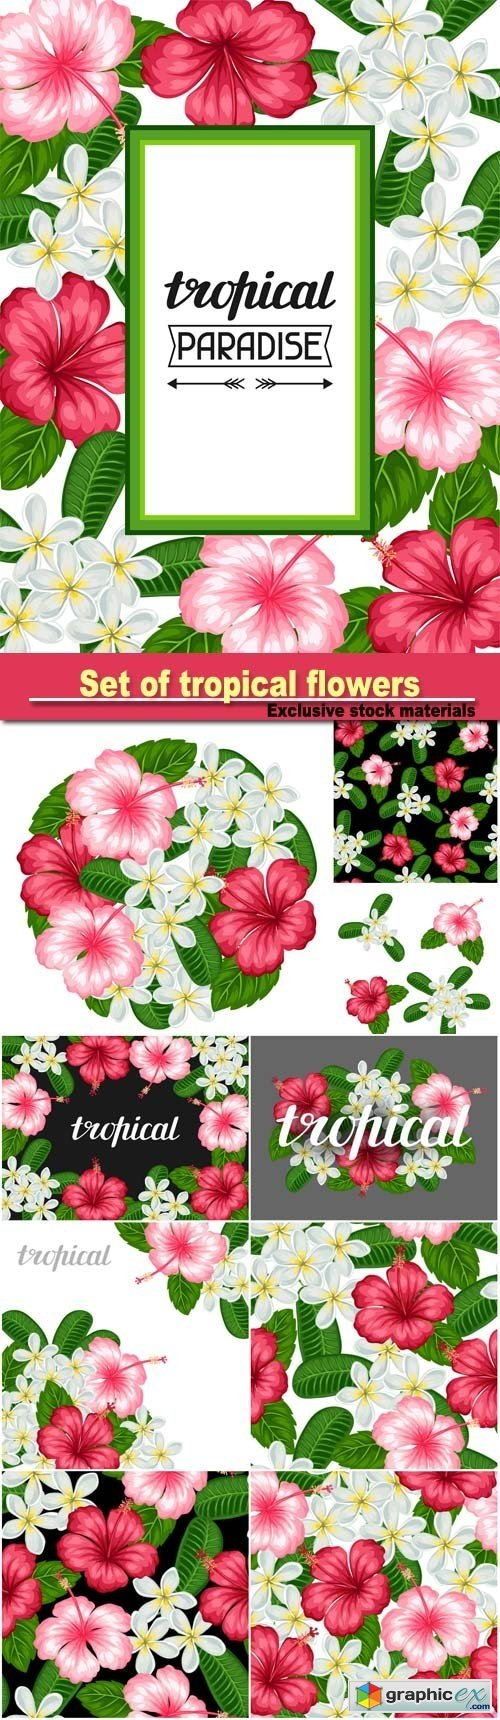 Set of tropical flowers hibiscus and plumeria